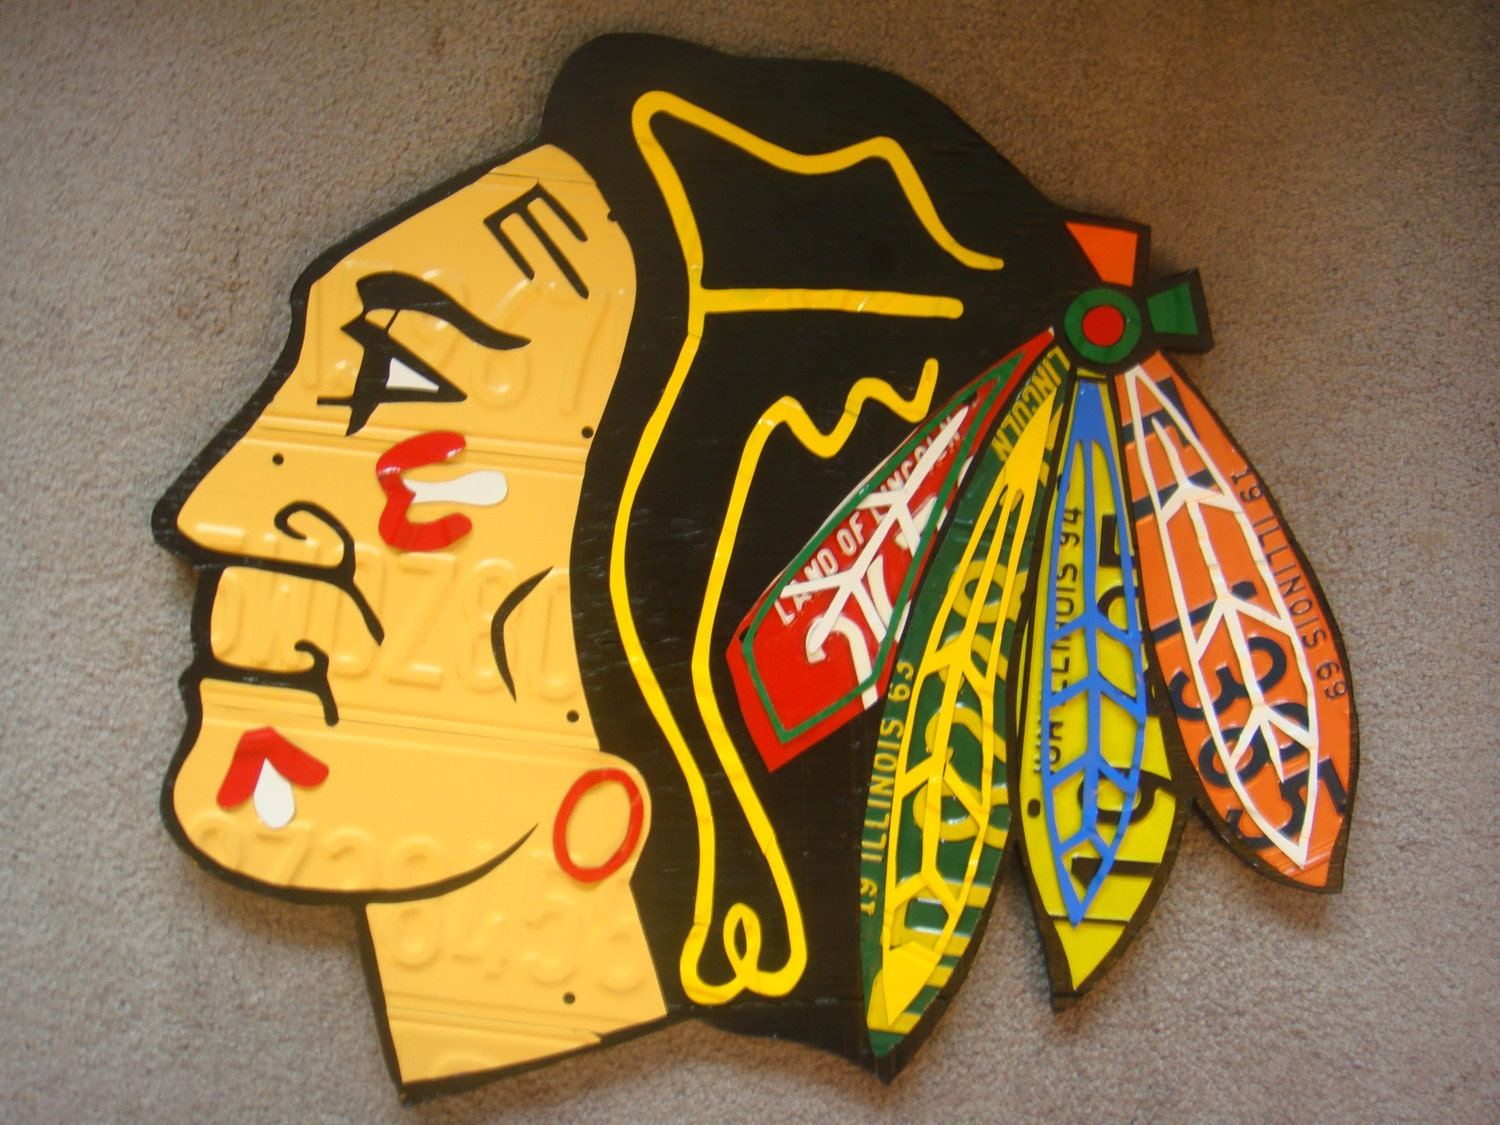 CHICAGO BLACKHAWKS LOGO Sign One Of A Kind Piece